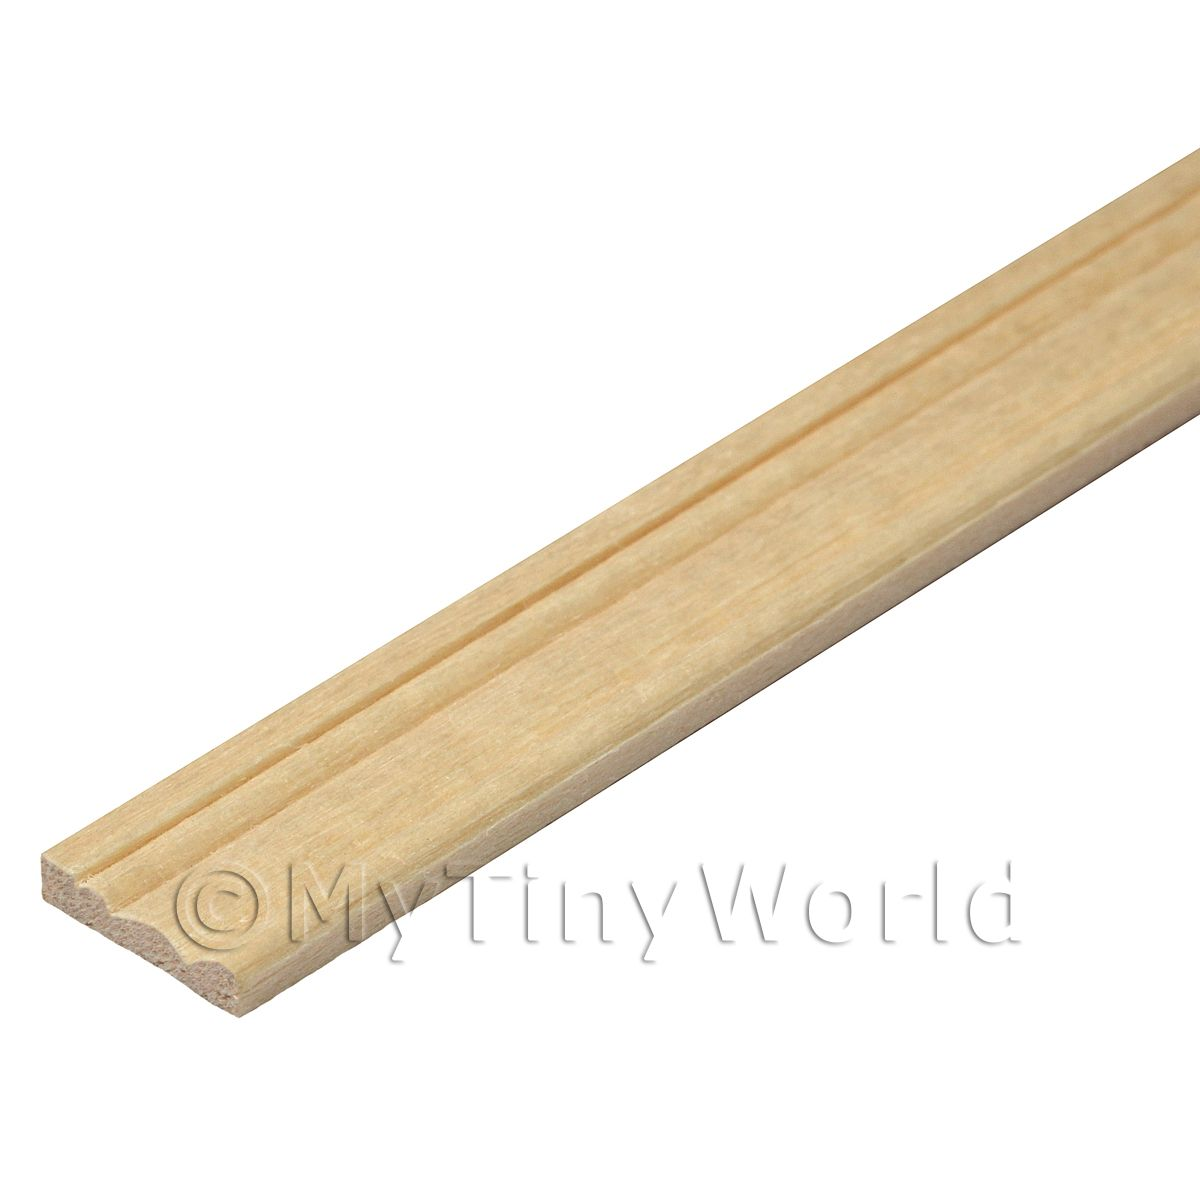 Dolls House Miniature 11mm Wood Skirting Board (Style 3)